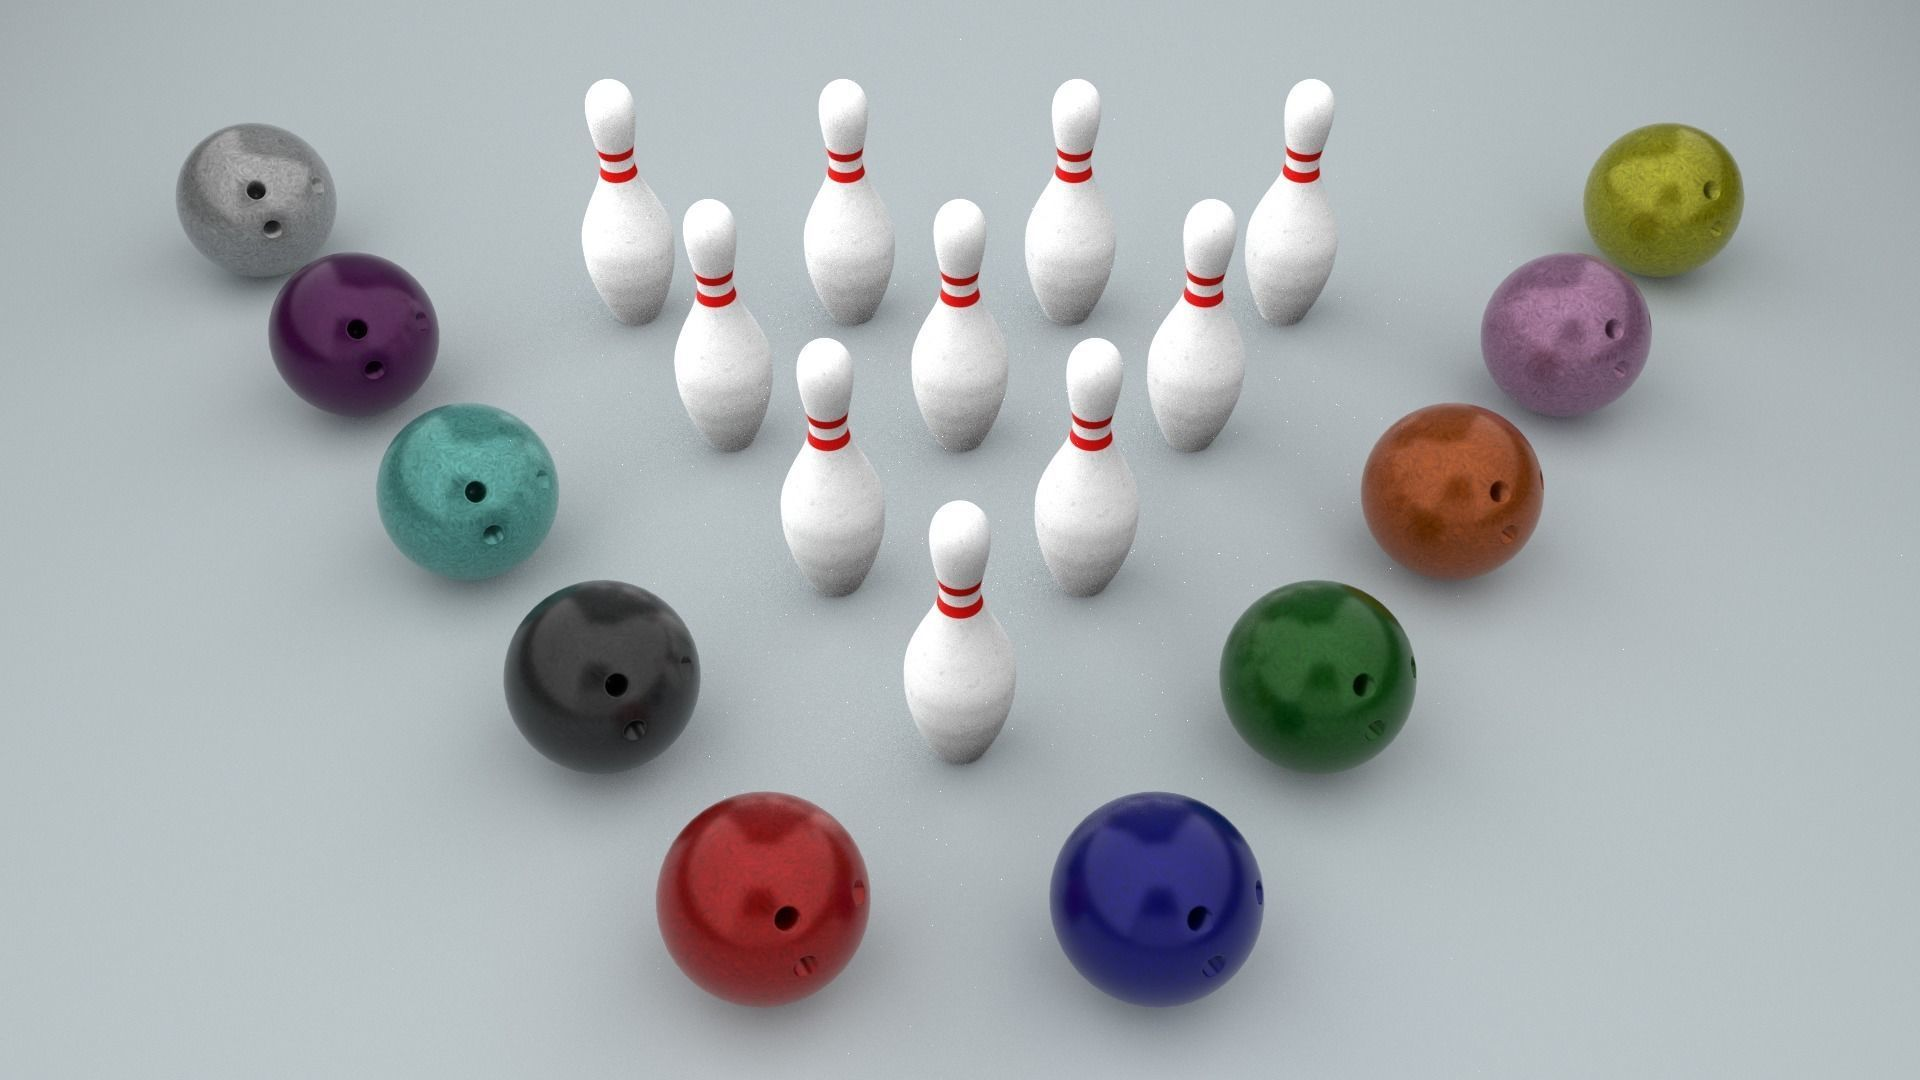 Bowling Ball and Pins - Low-poly PBR